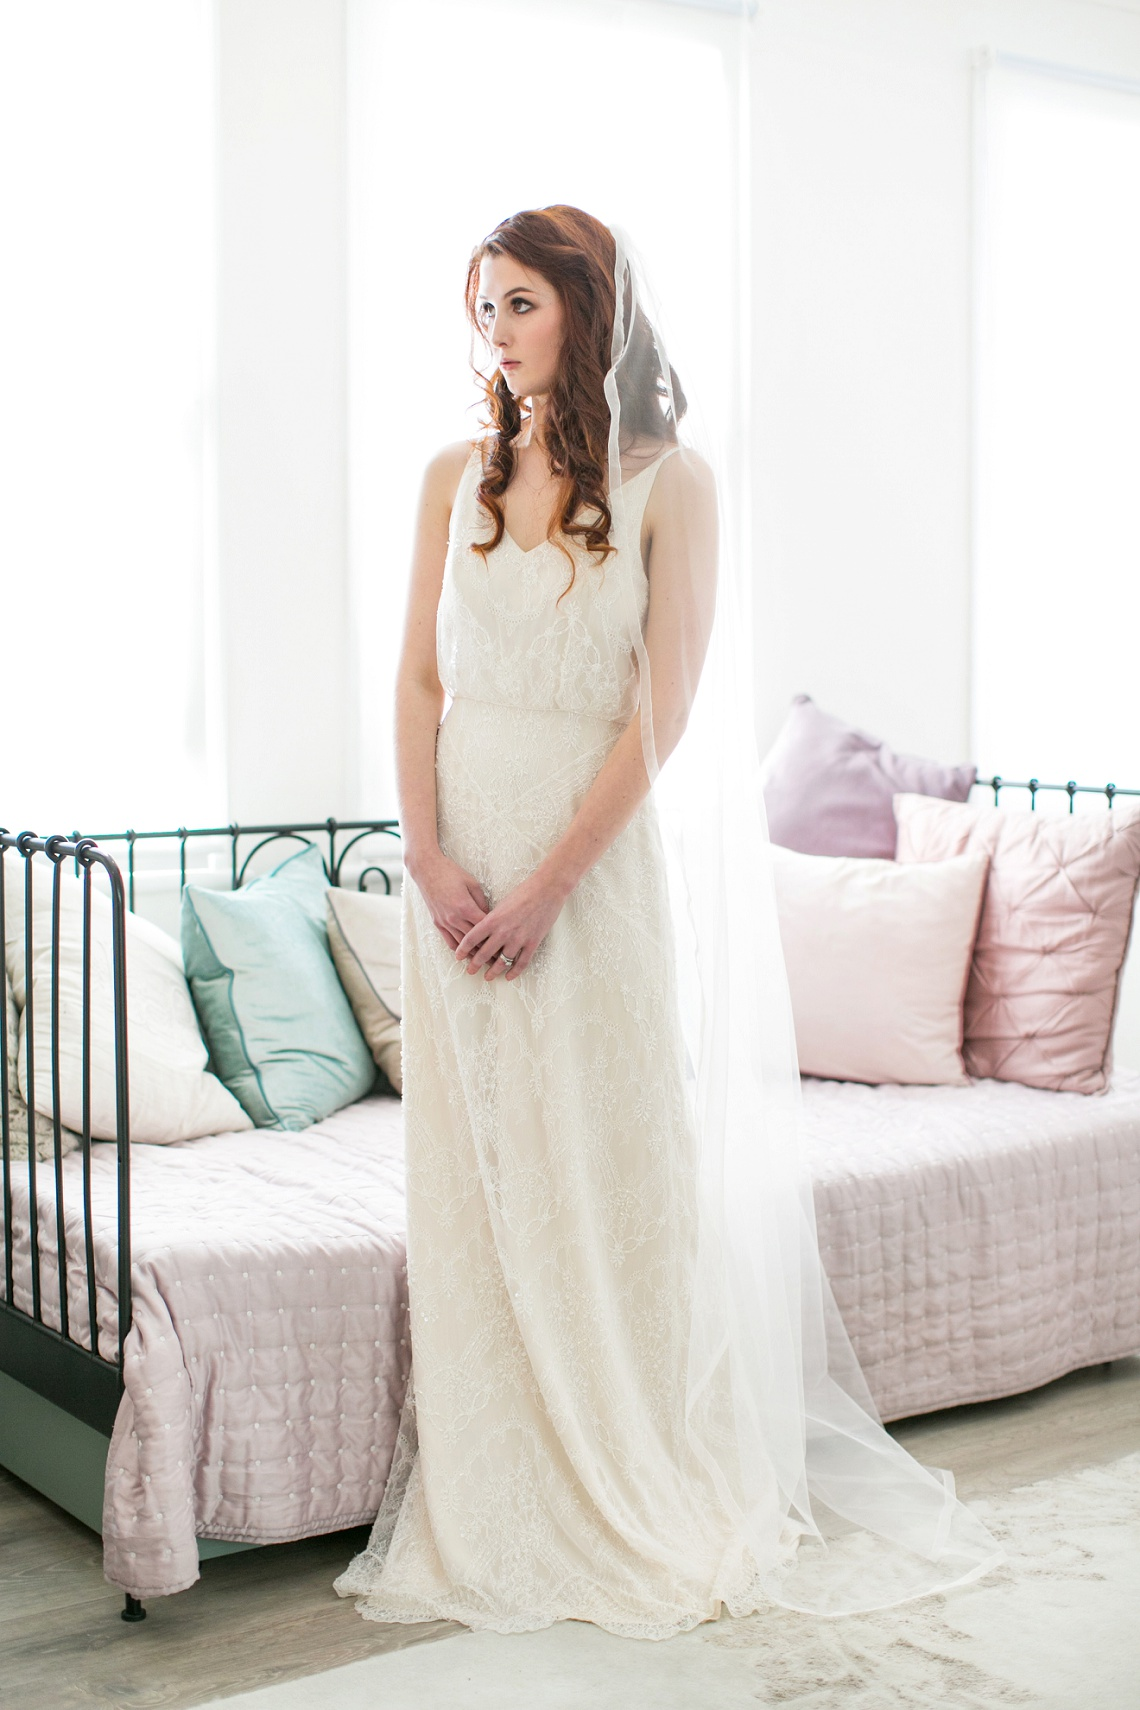 bloved-wedding-blog-comfortable-bridal-style (13)